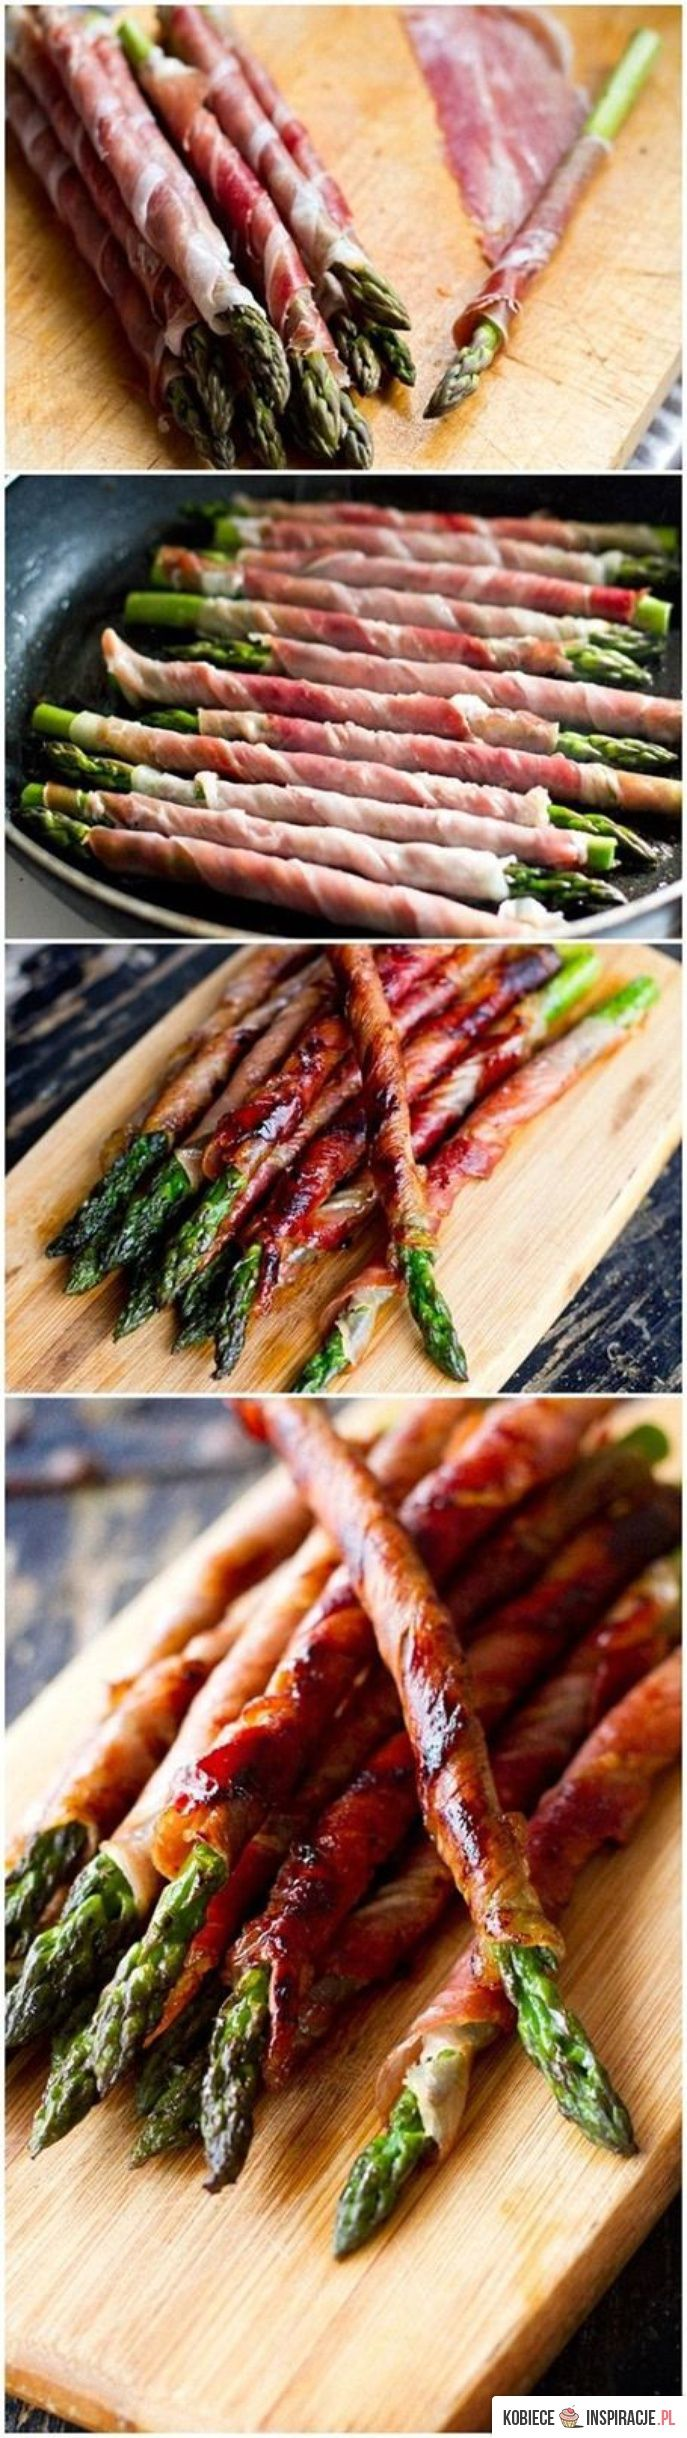 Yes please! This would make for a fun and easy appetizer for the holidays.   Kobieceinspiracje